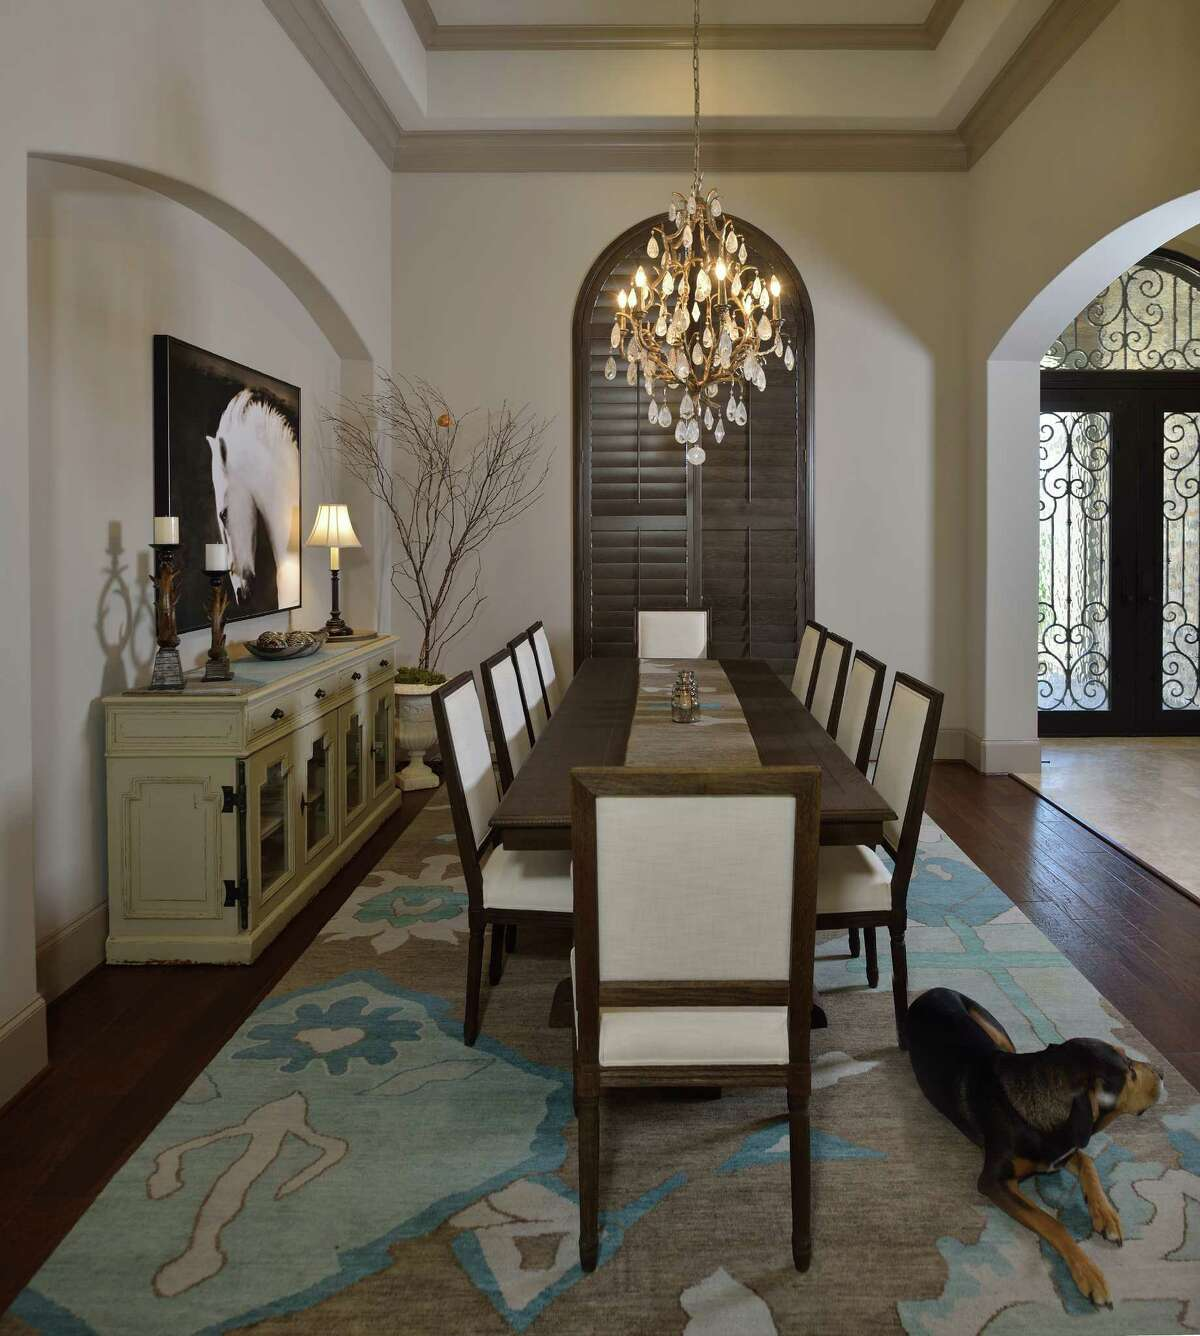 The dining roomin the home of Randy and Shari Ziebarth of Kingwood.